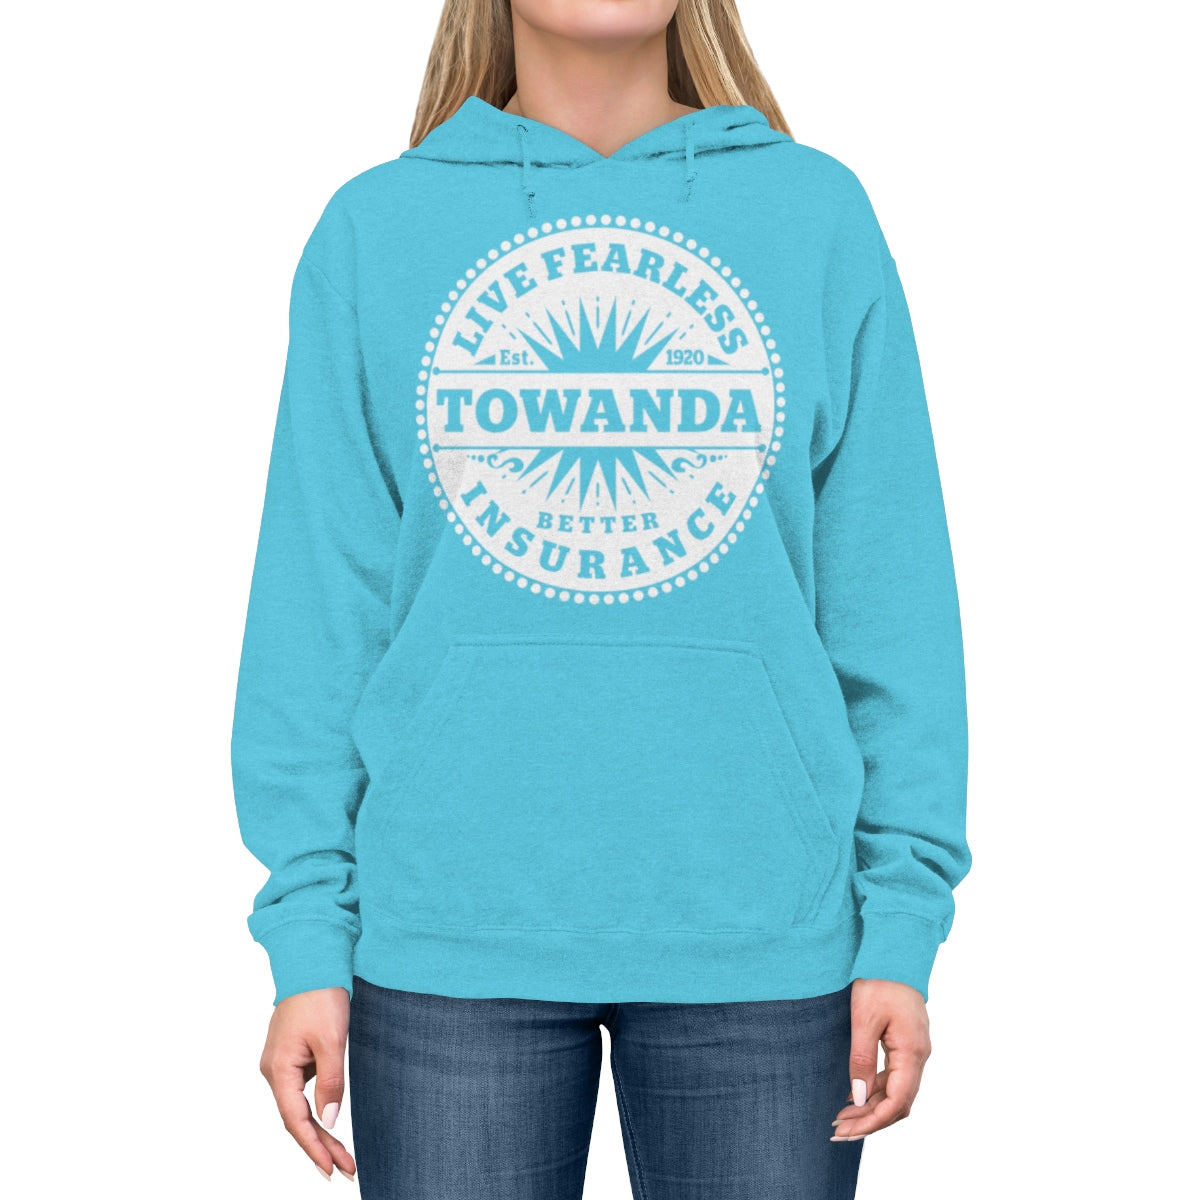 Live Fearless TOWANDA - Lightweight Hoodie / Fried Green Tomatoes, Girl Power Gift